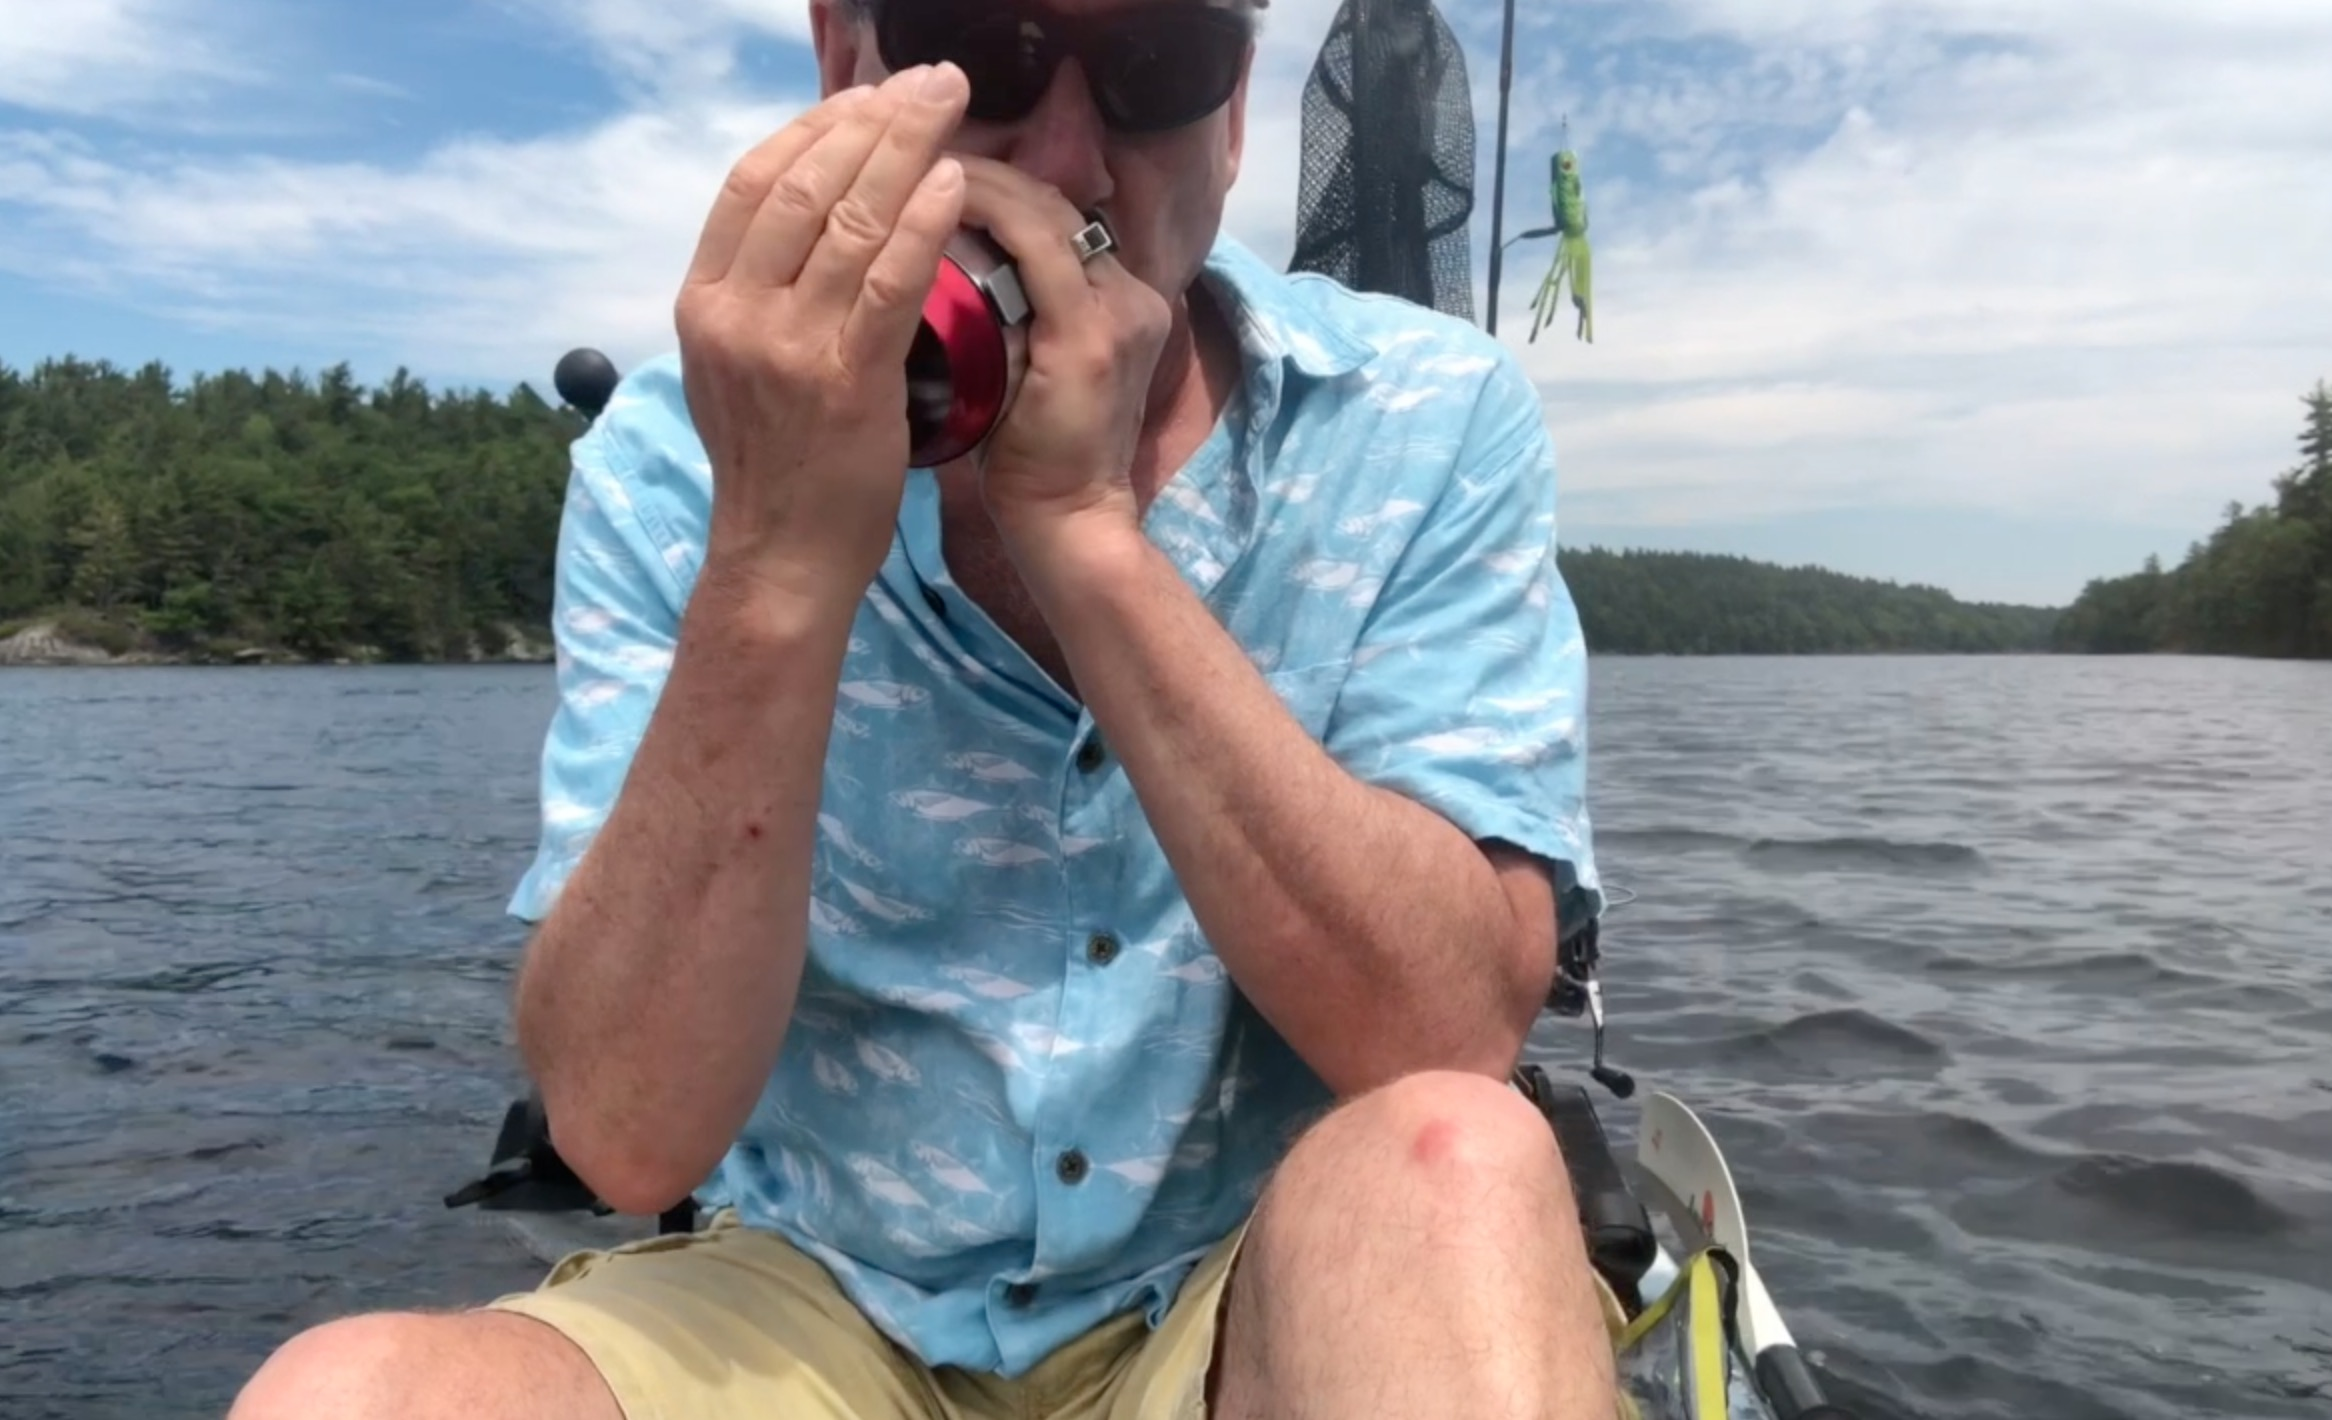 Using Harmonica Effects To Catch Fish??